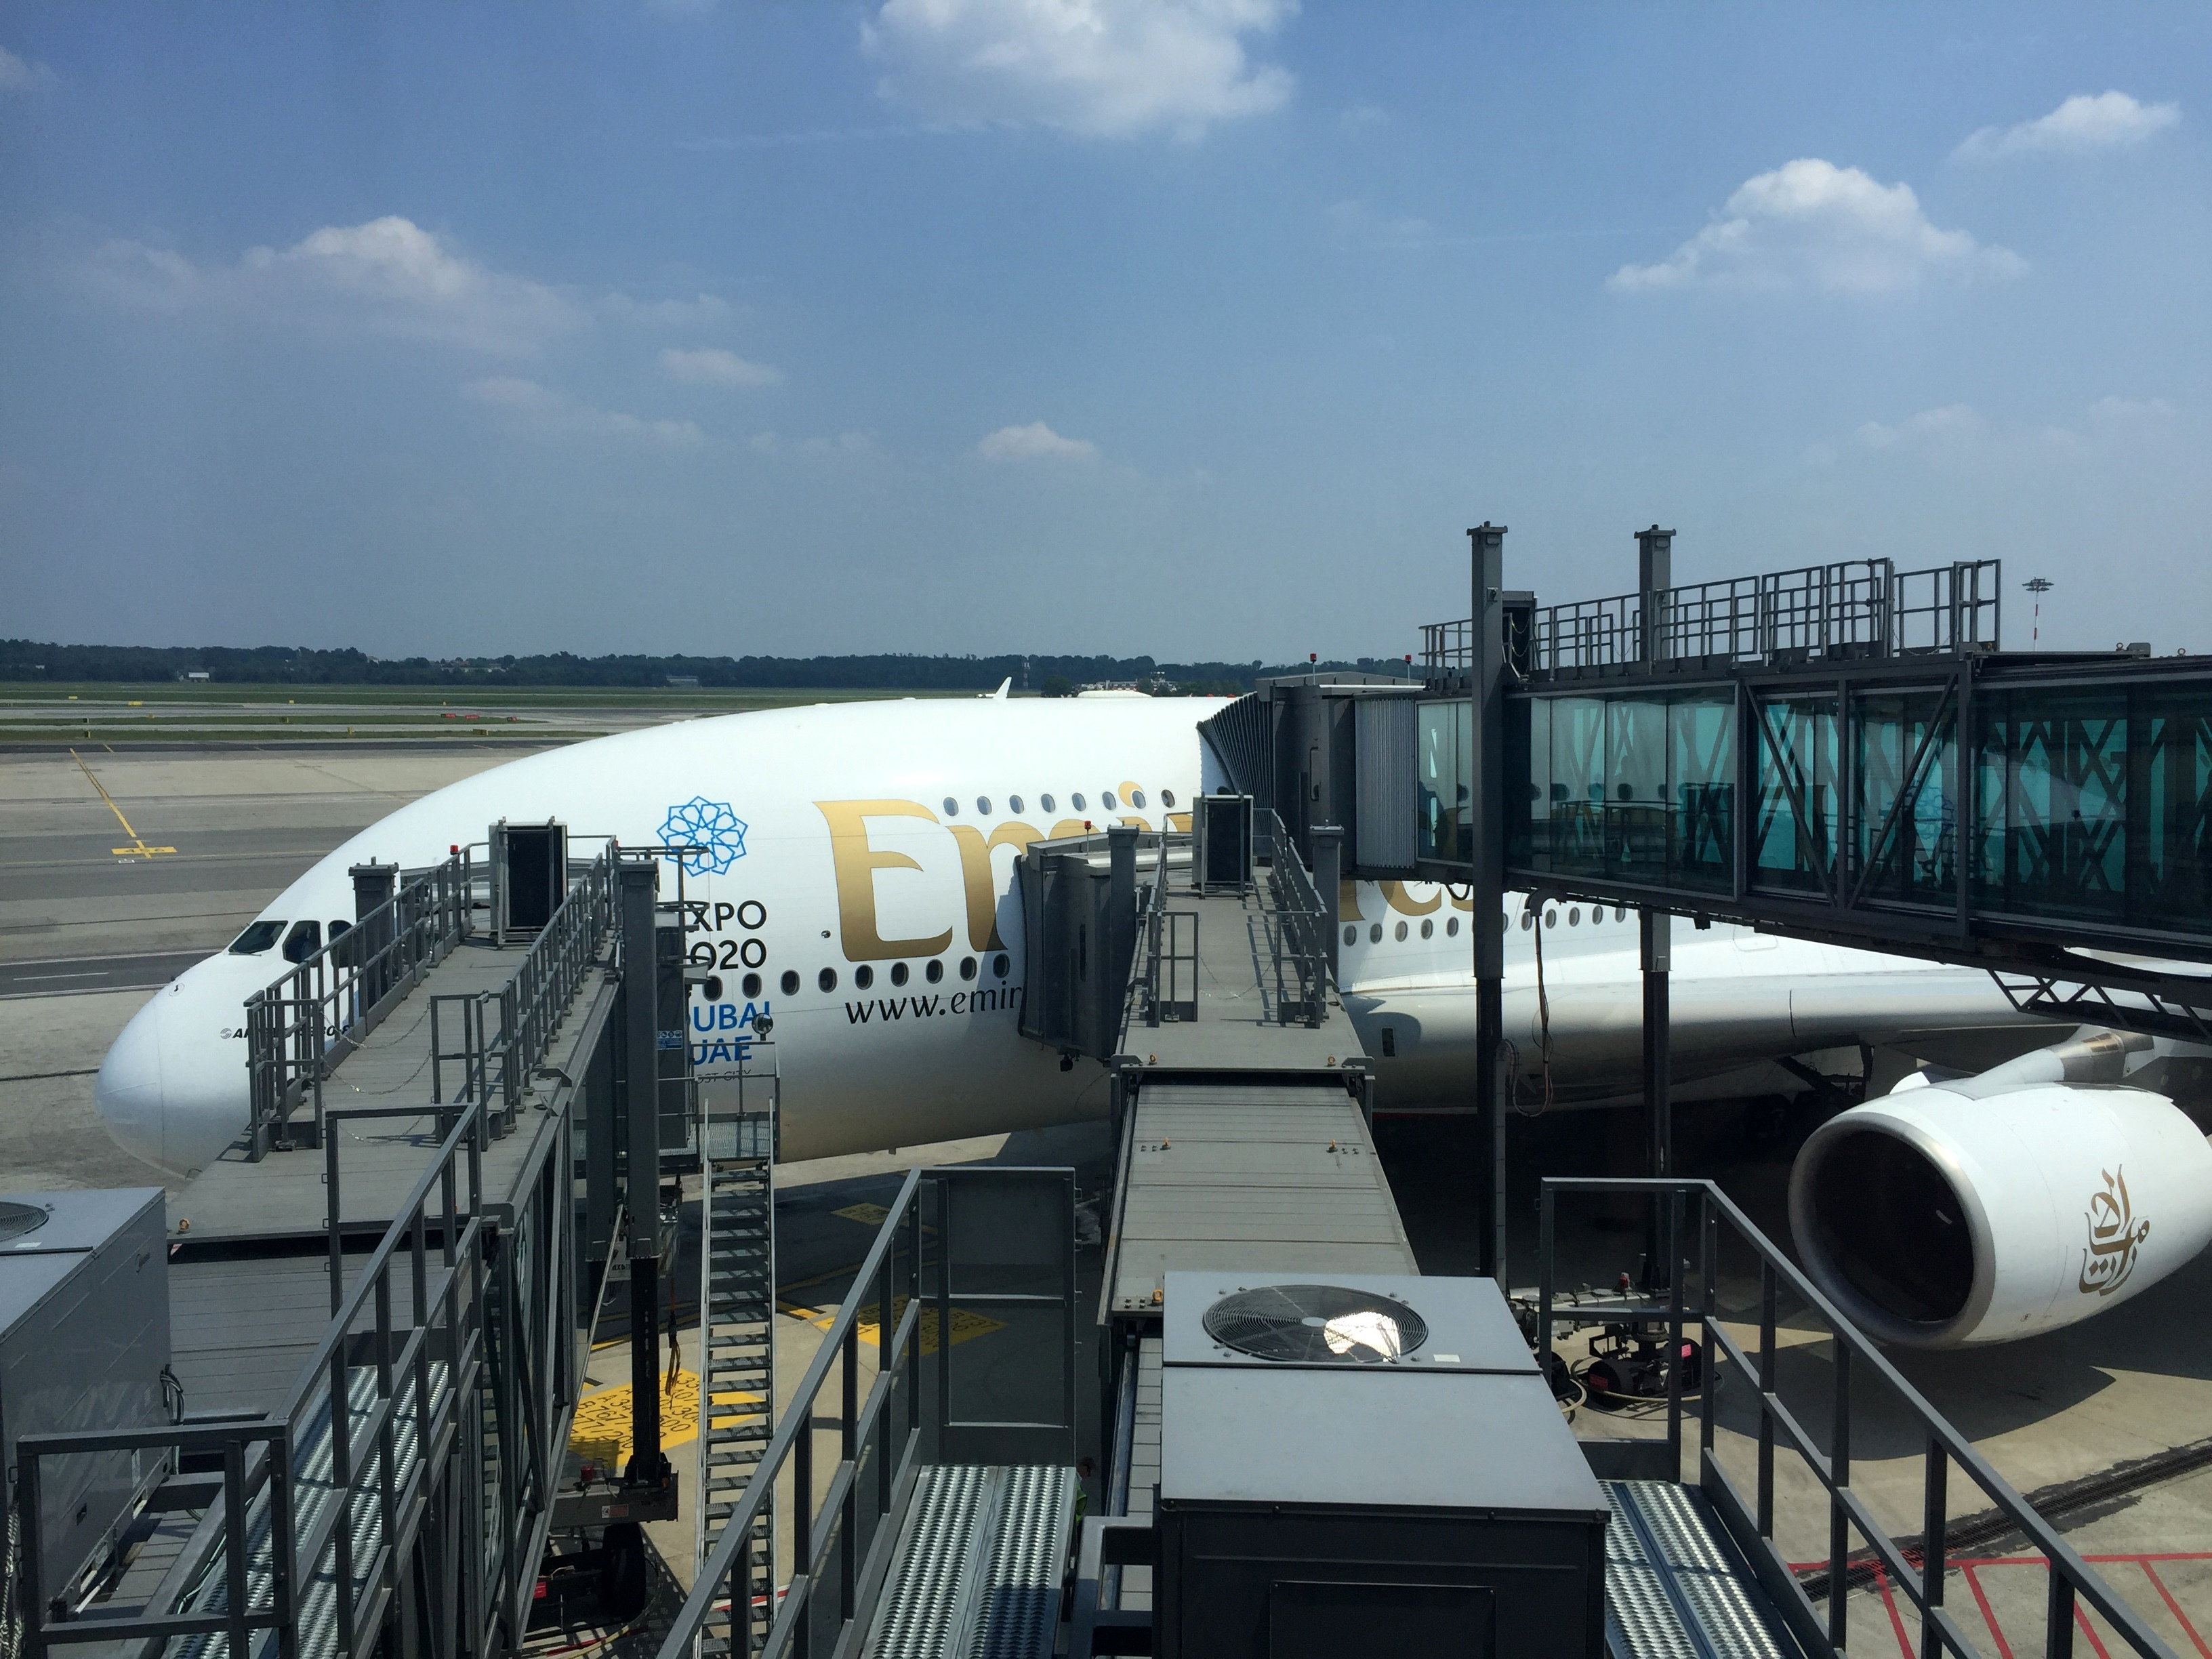 Flight Review: Emirates First Class A380 Milan (MXP) - Dubai